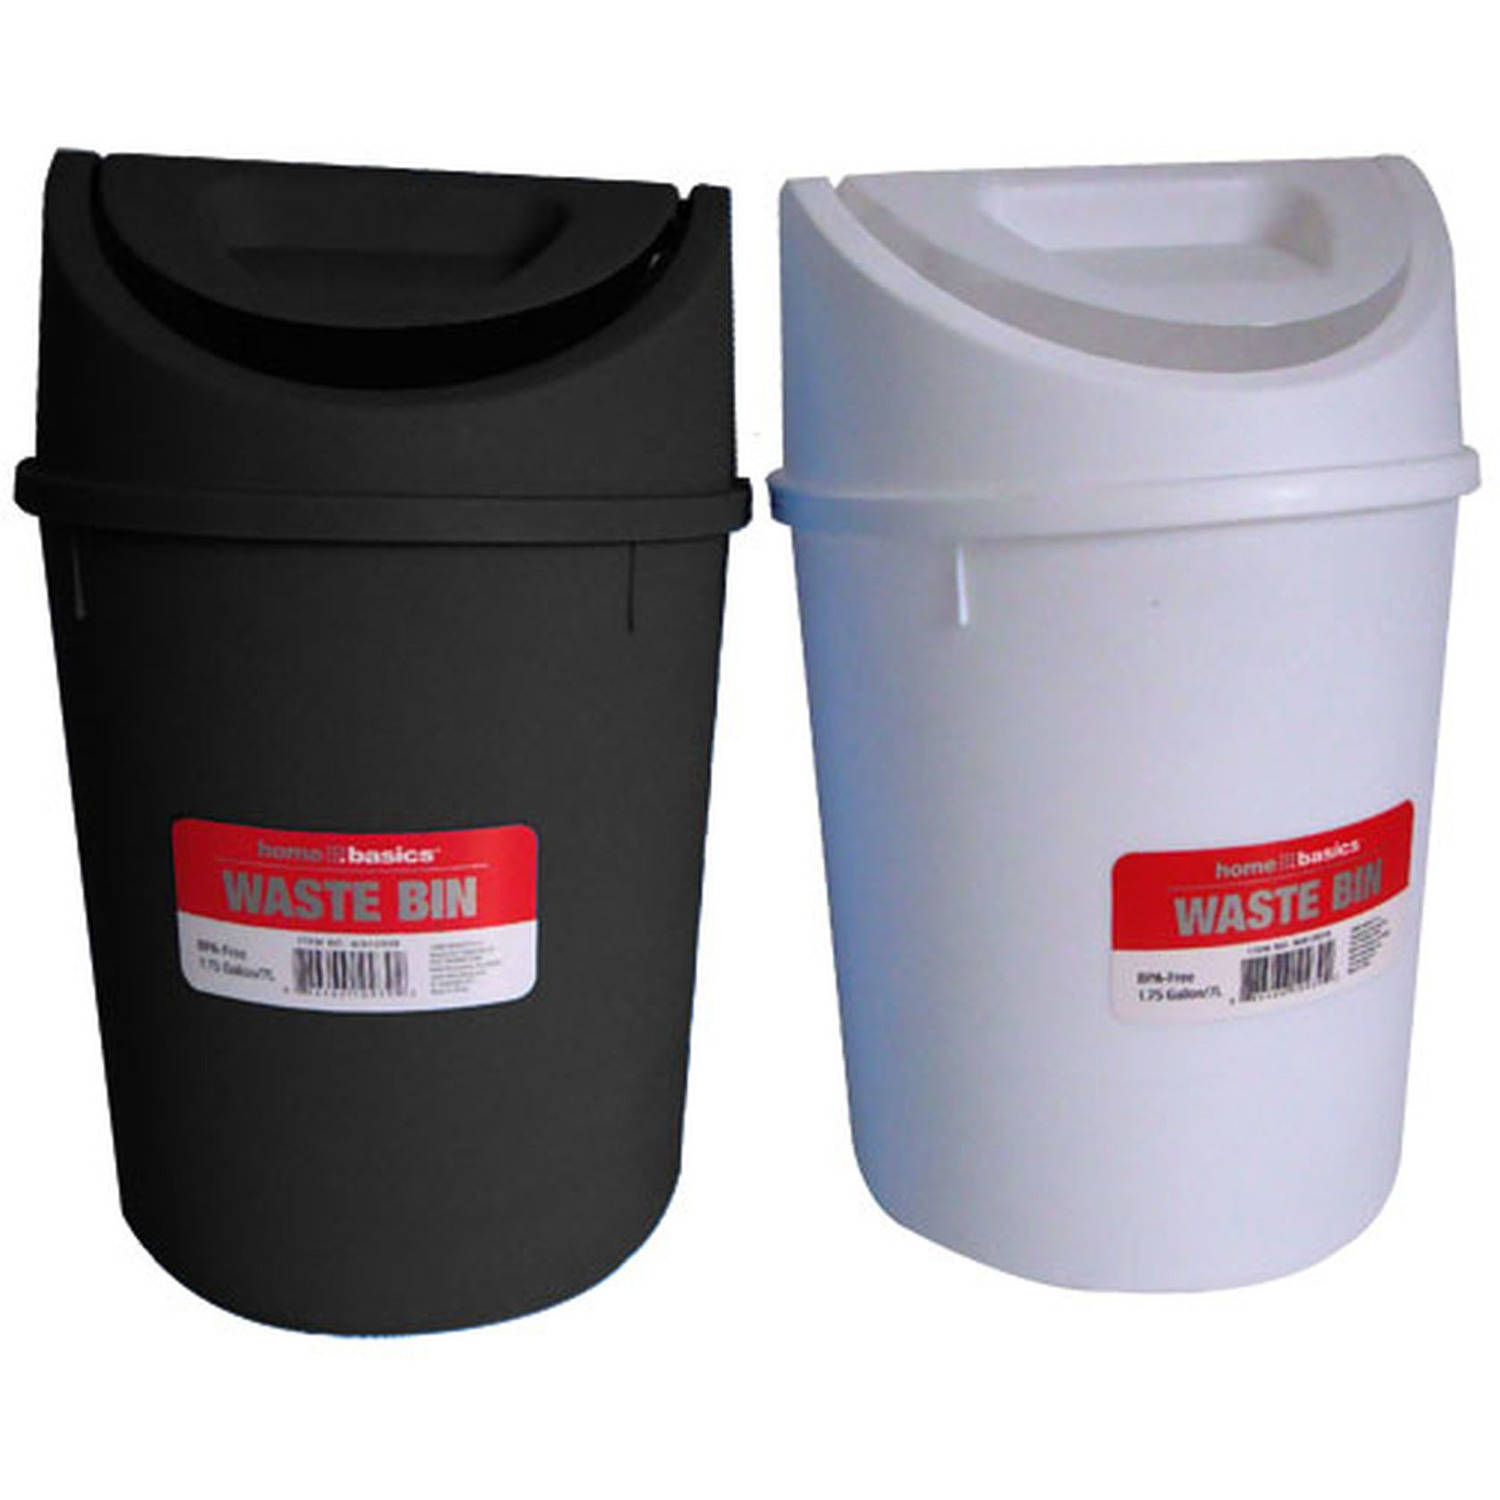 Home Basics Plastic 7 L Waste Bin